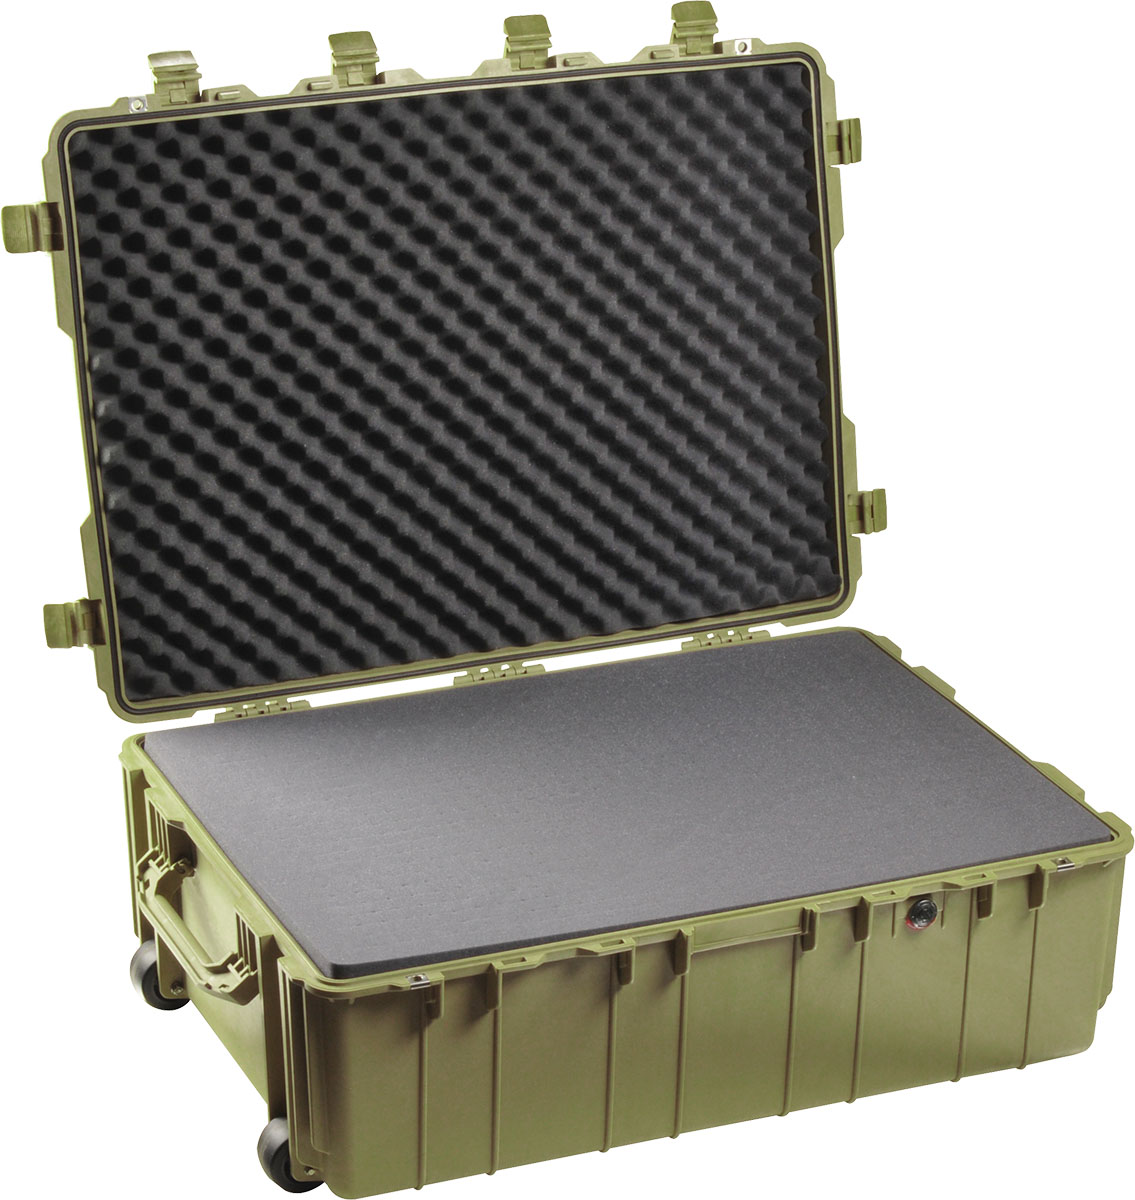 pelican 1730 hard military rolling transport case